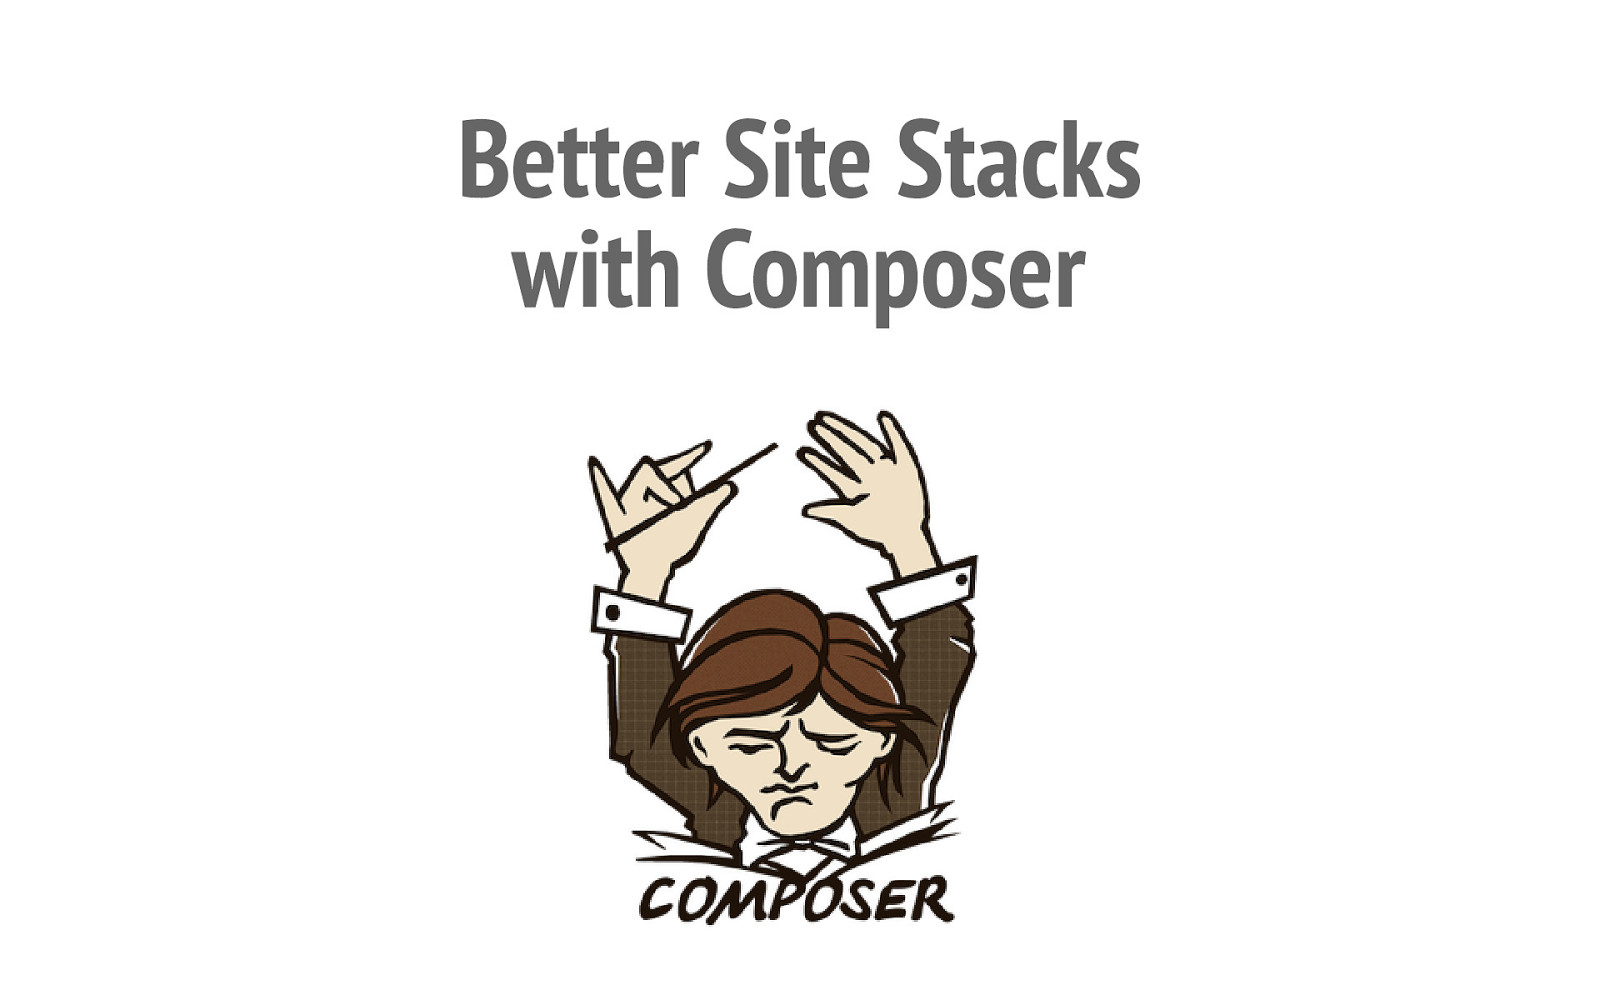 Better Site Stacks with Composer